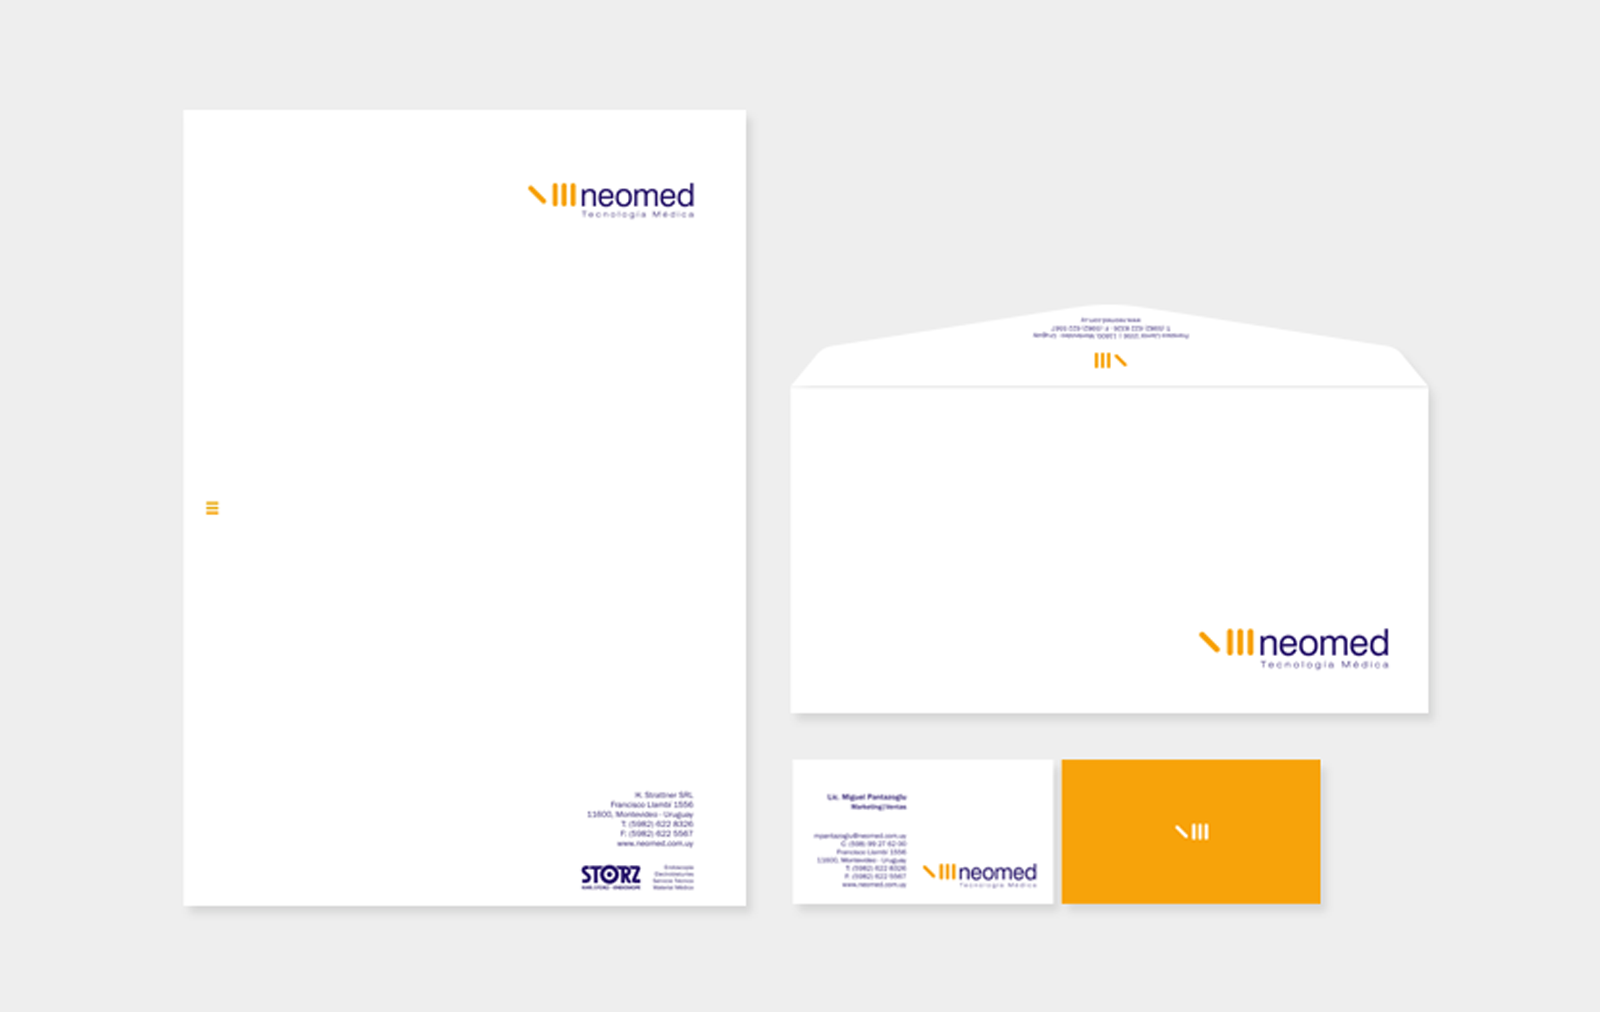 Cliente: NEOMED. Identidad visual